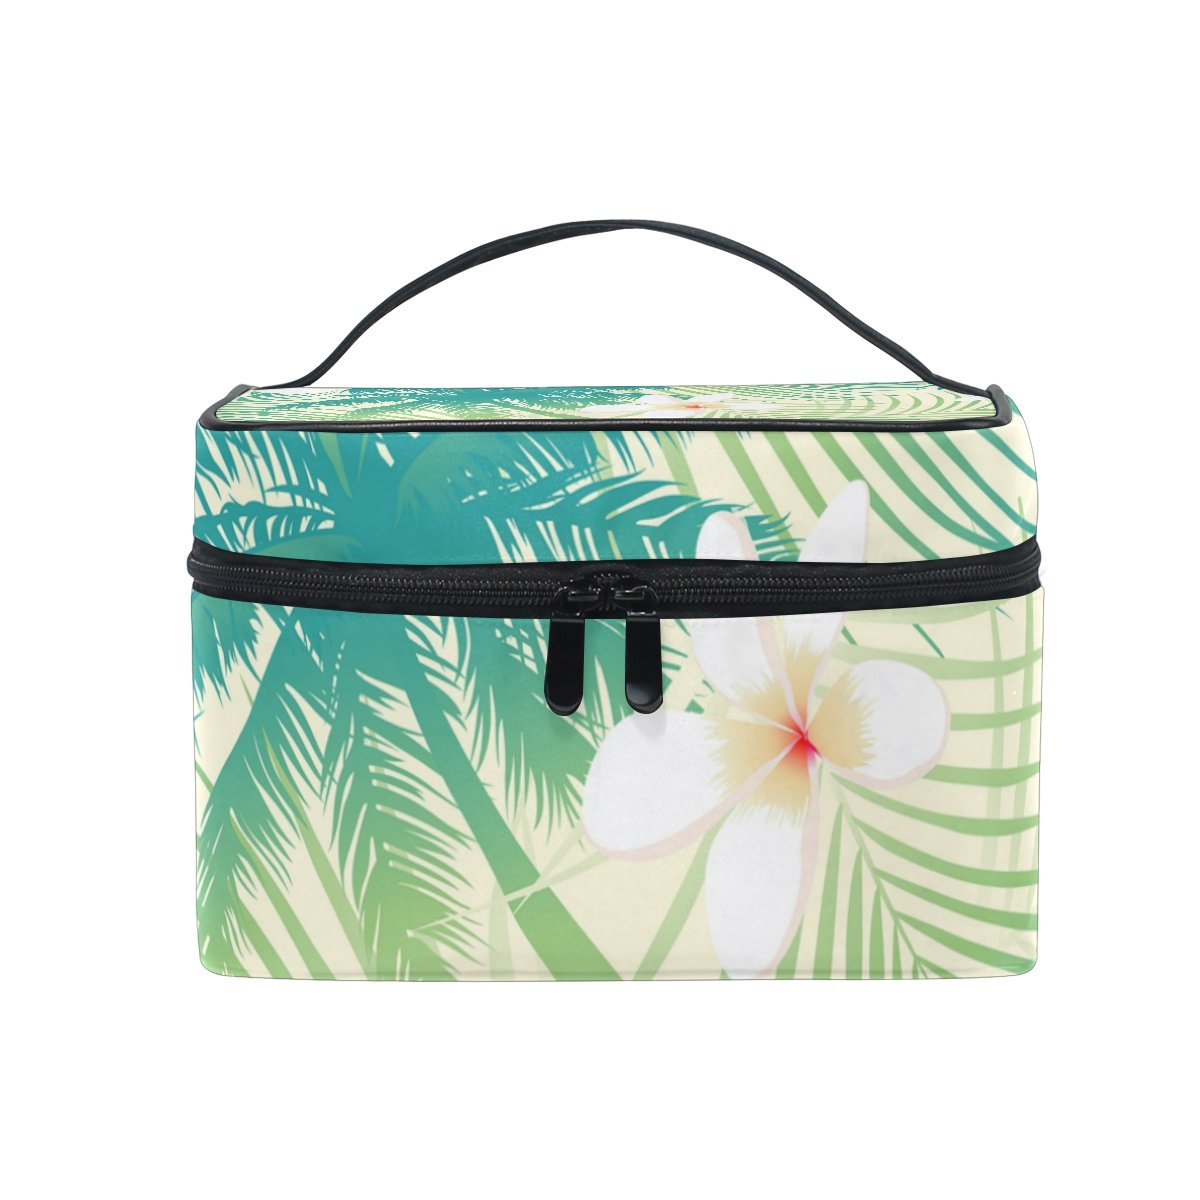 Cosmetic Case Bag Tropical Palm Tree Leaf Portable Travel Makeup Bag Toiletry Organizer